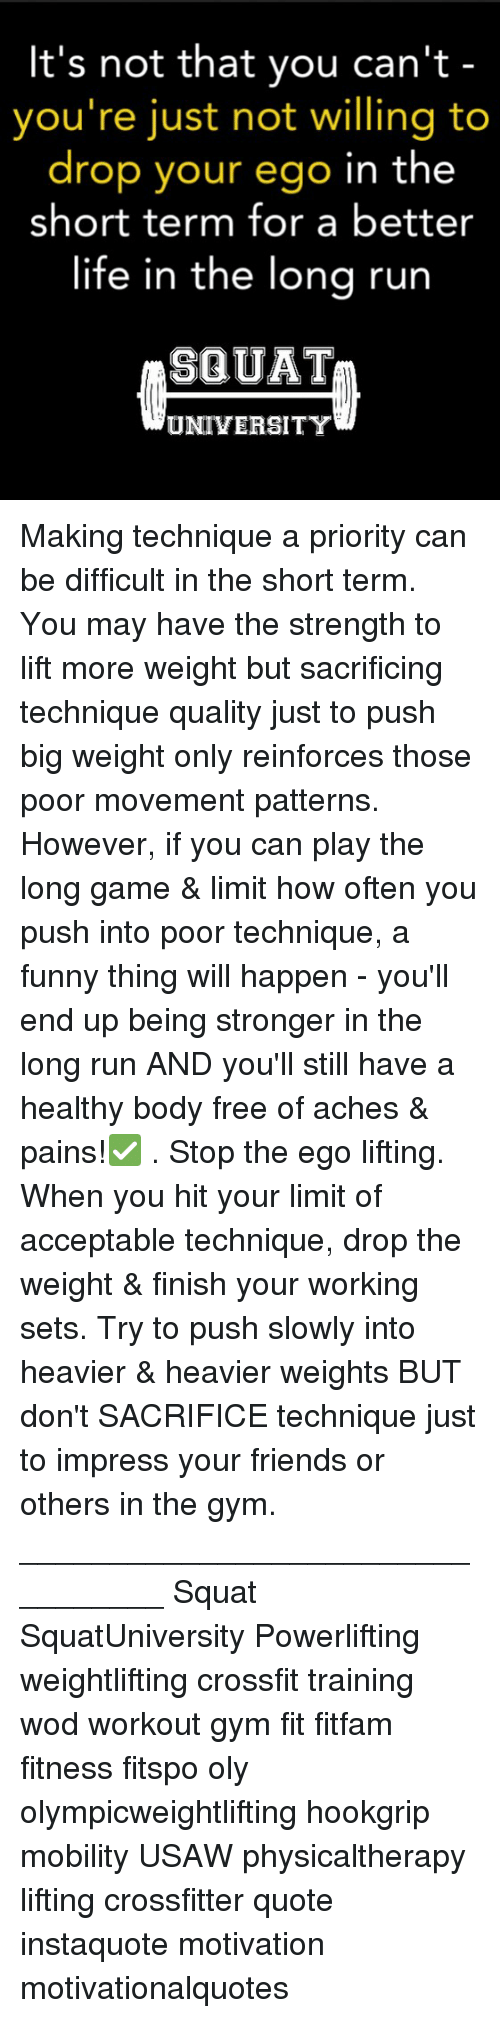 Impresser: It's not that you can't  you're just not willing to  drop your ego in the  short term for a better  life in the lona run  SQUAT  UNIVERSITY Making technique a priority can be difficult in the short term. You may have the strength to lift more weight but sacrificing technique quality just to push big weight only reinforces those poor movement patterns. However, if you can play the long game & limit how often you push into poor technique, a funny thing will happen - you'll end up being stronger in the long run AND you'll still have a healthy body free of aches & pains!✅ . Stop the ego lifting. When you hit your limit of acceptable technique, drop the weight & finish your working sets. Try to push slowly into heavier & heavier weights BUT don't SACRIFICE technique just to impress your friends or others in the gym. _________________________________ Squat SquatUniversity Powerlifting weightlifting crossfit training wod workout gym fit fitfam fitness fitspo oly olympicweightlifting hookgrip mobility USAW physicaltherapy lifting crossfitter quote instaquote motivation motivationalquotes